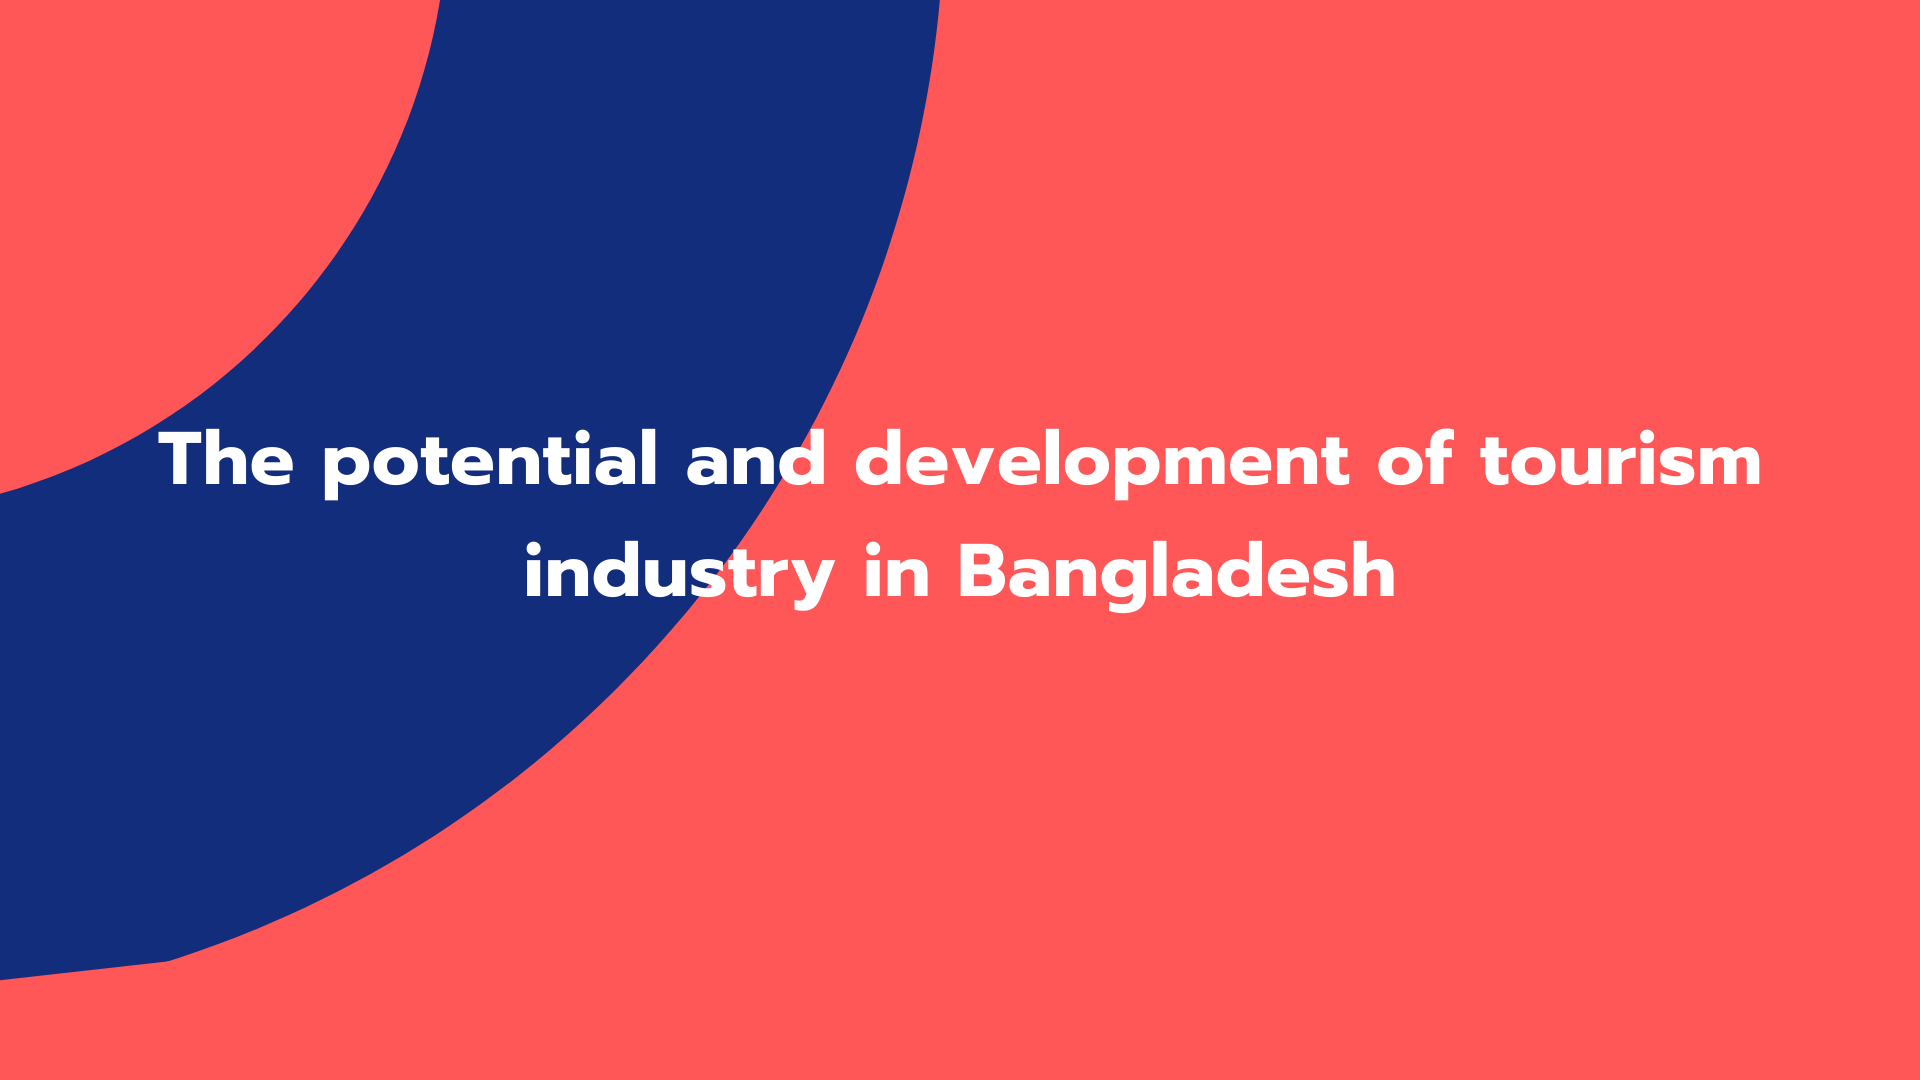 The potential and development of tourism industry in Bangladesh